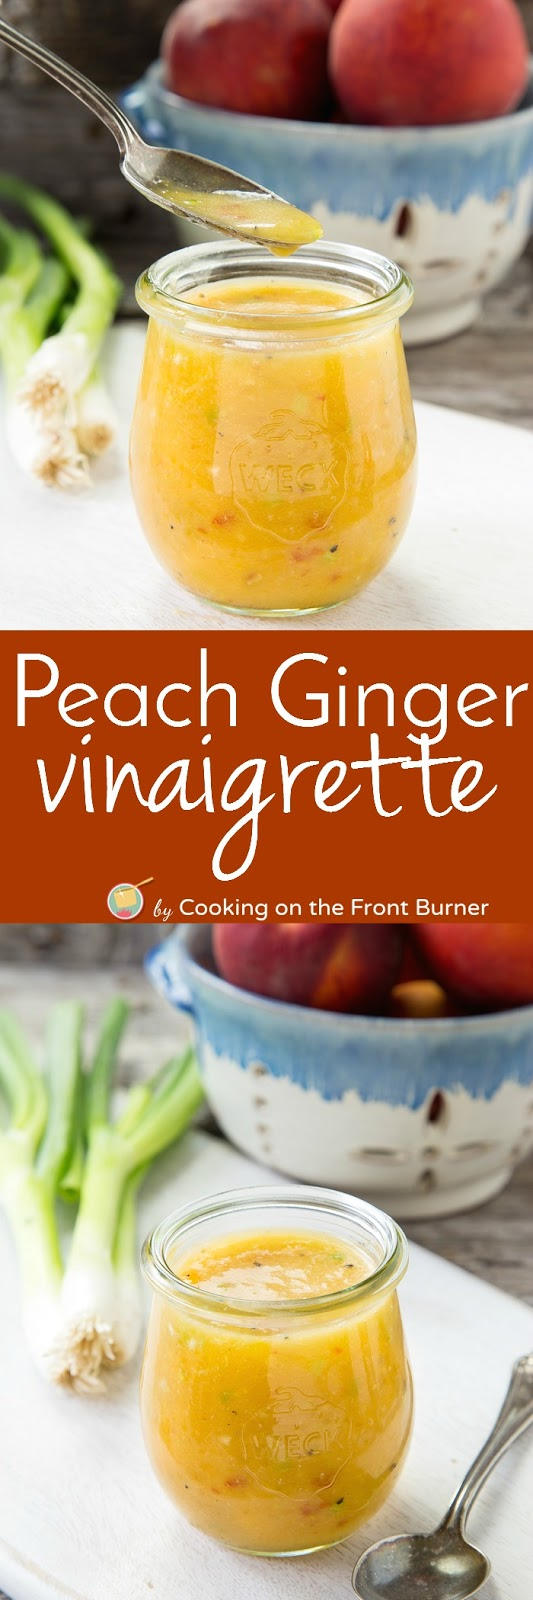 It is so easy to make your own Peach Ginger Vinaigrette.  Perfect on salads or a marinade!